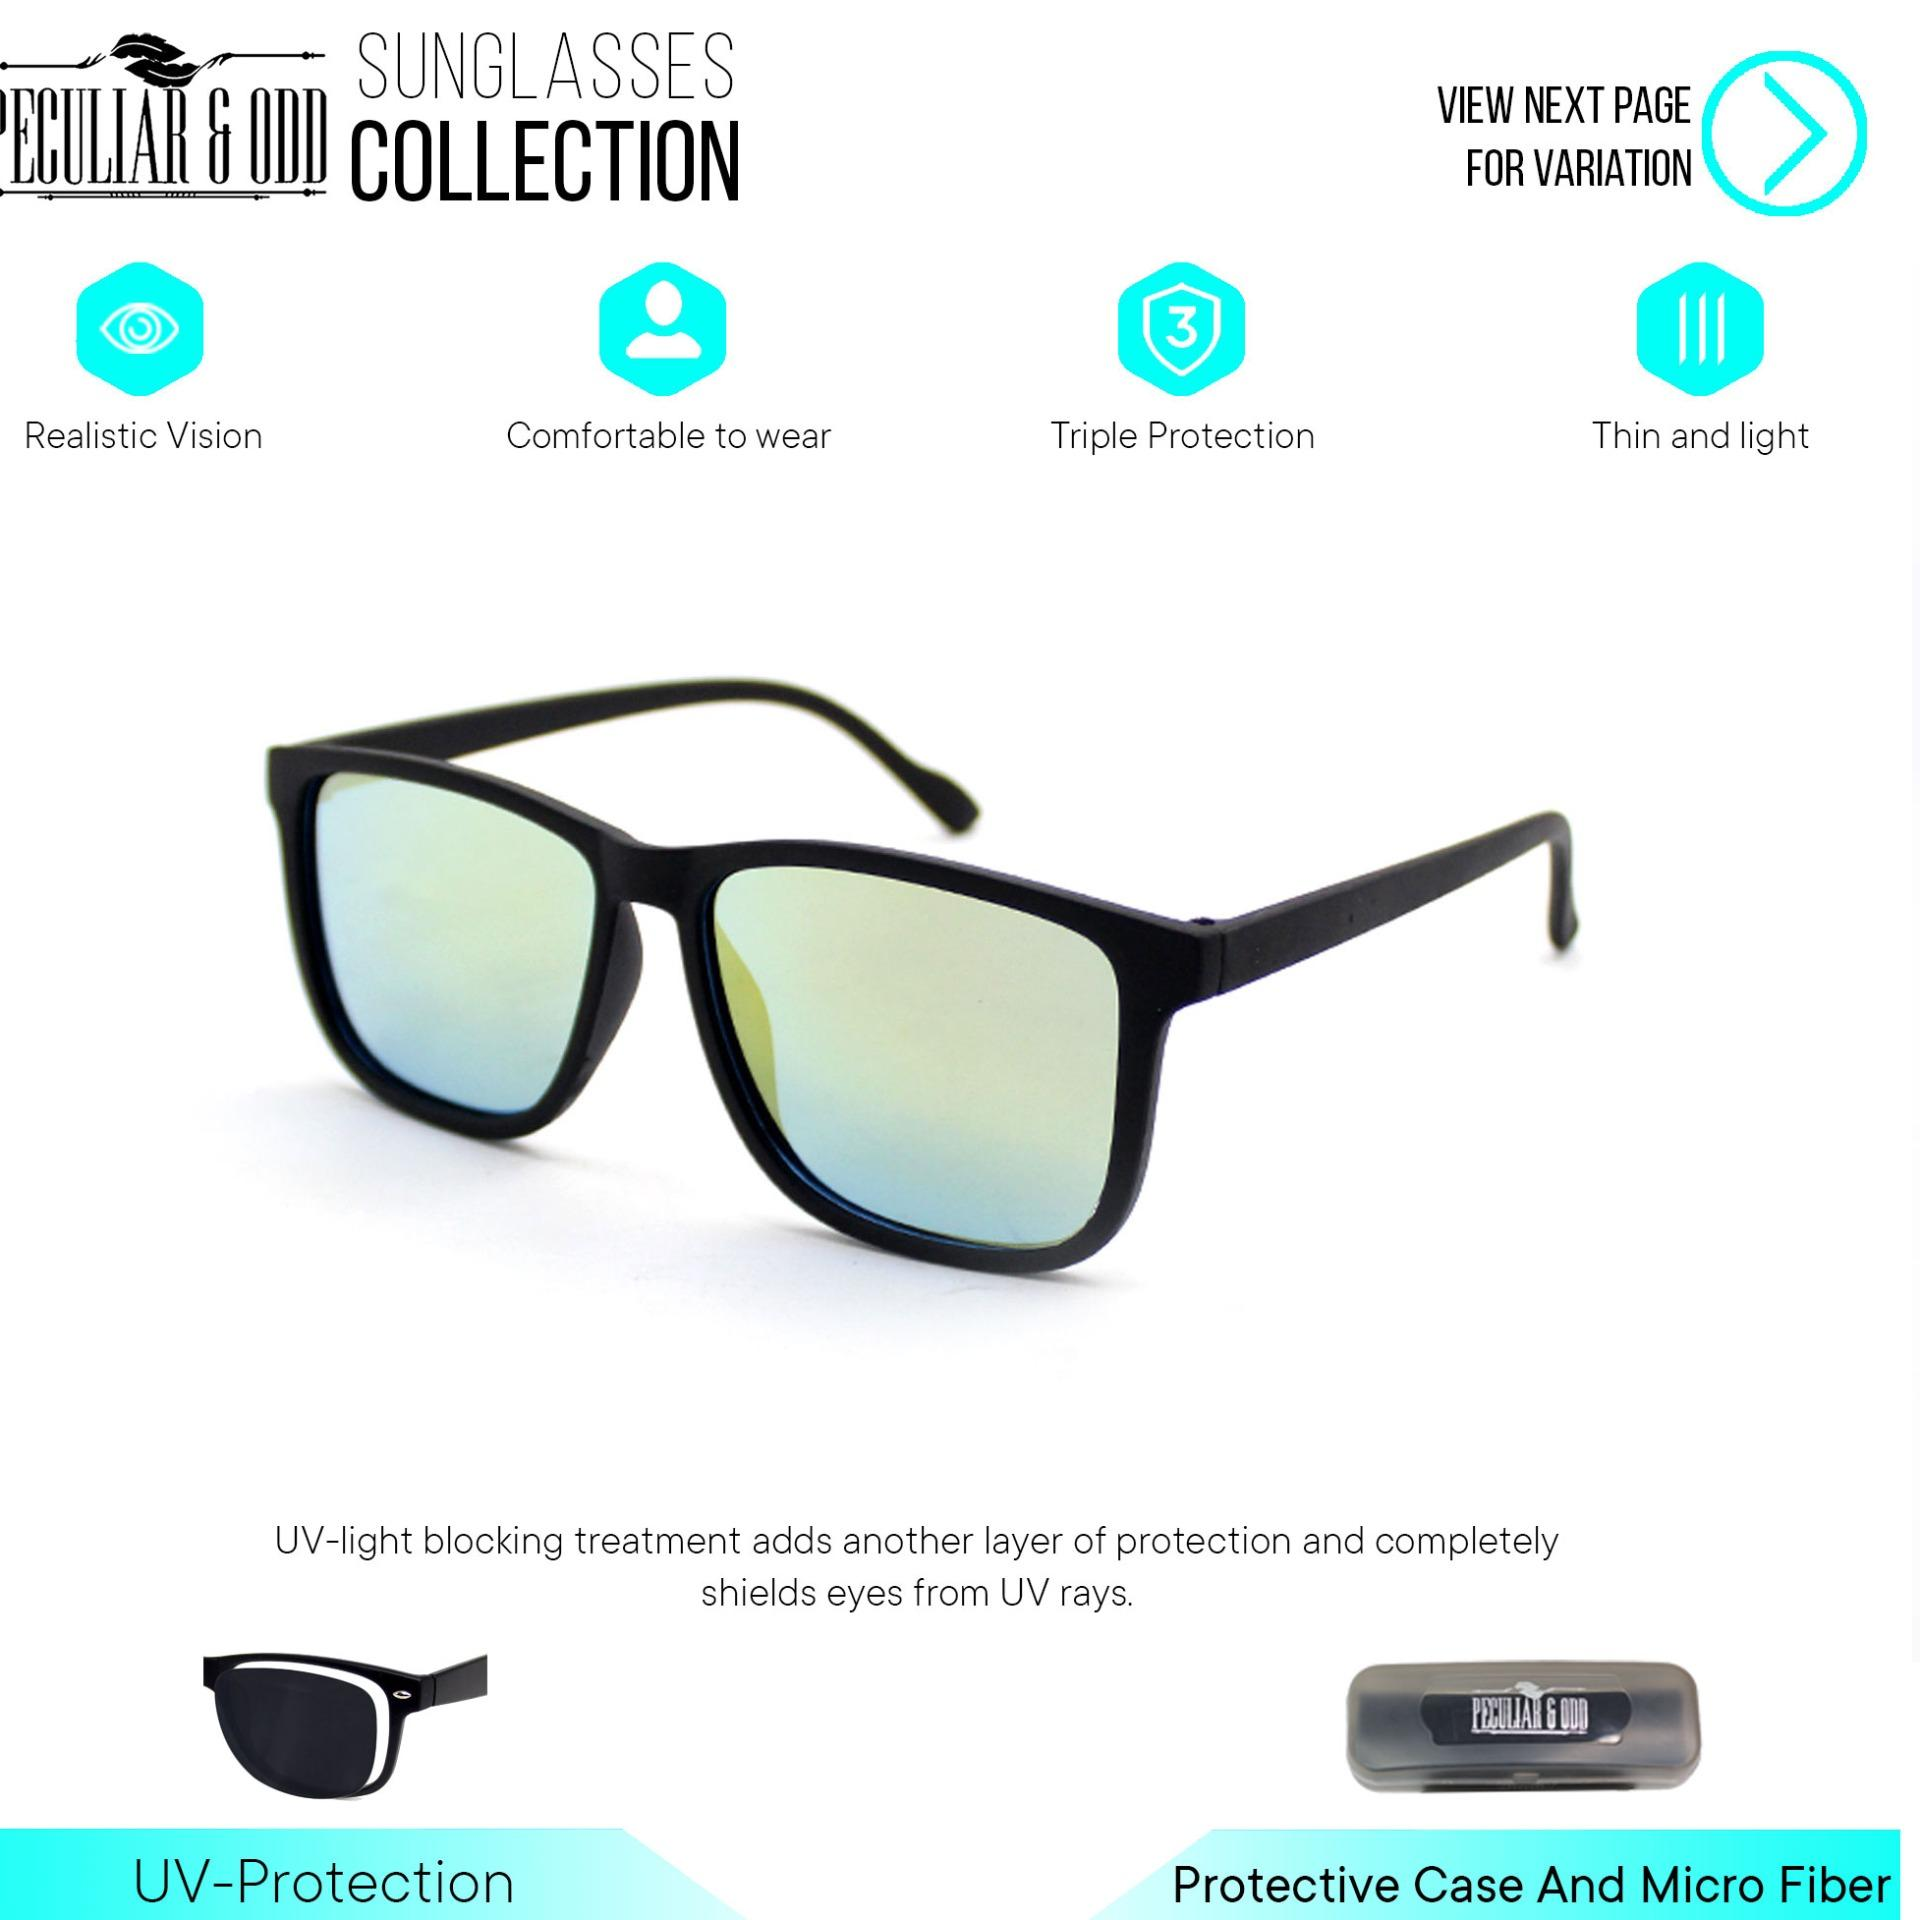 a0e49d994 Peculiar Oversized Square Classic Sunglass 3476 Unisex Eyewear Shades-  Peculiar and Odd Collection